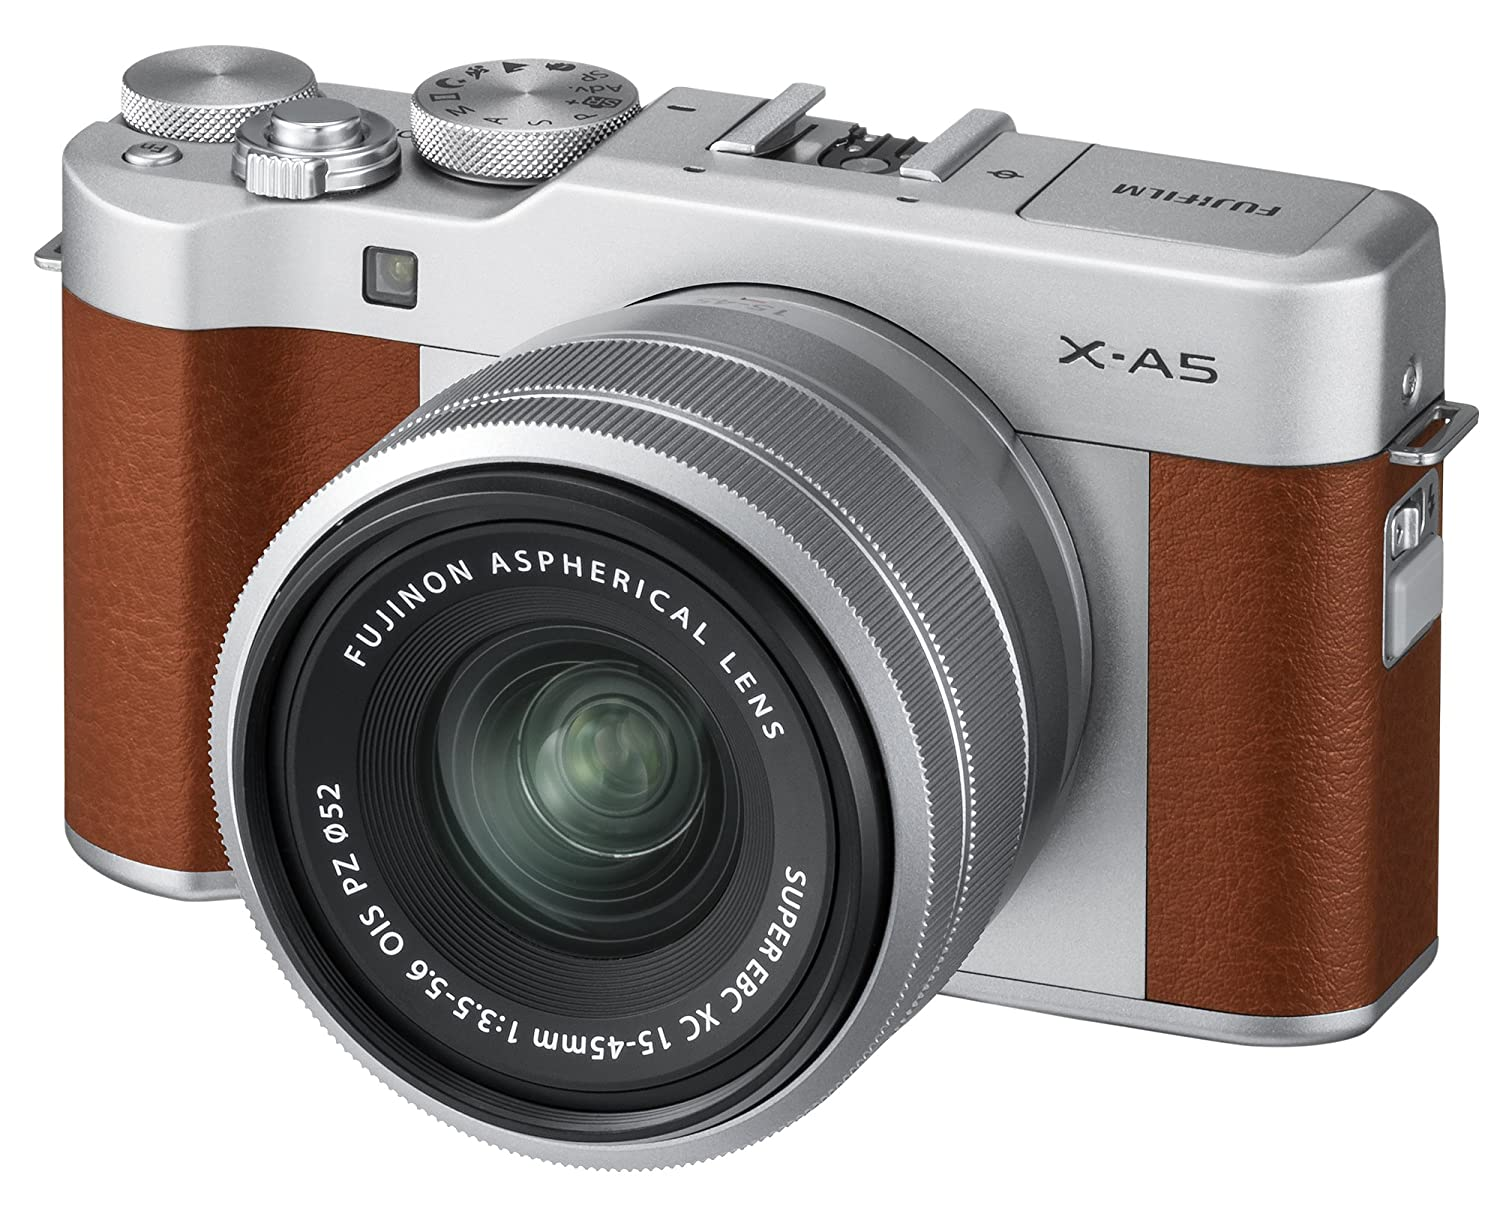 1- Best Cameras for Blogging - Fujifilm X-A5